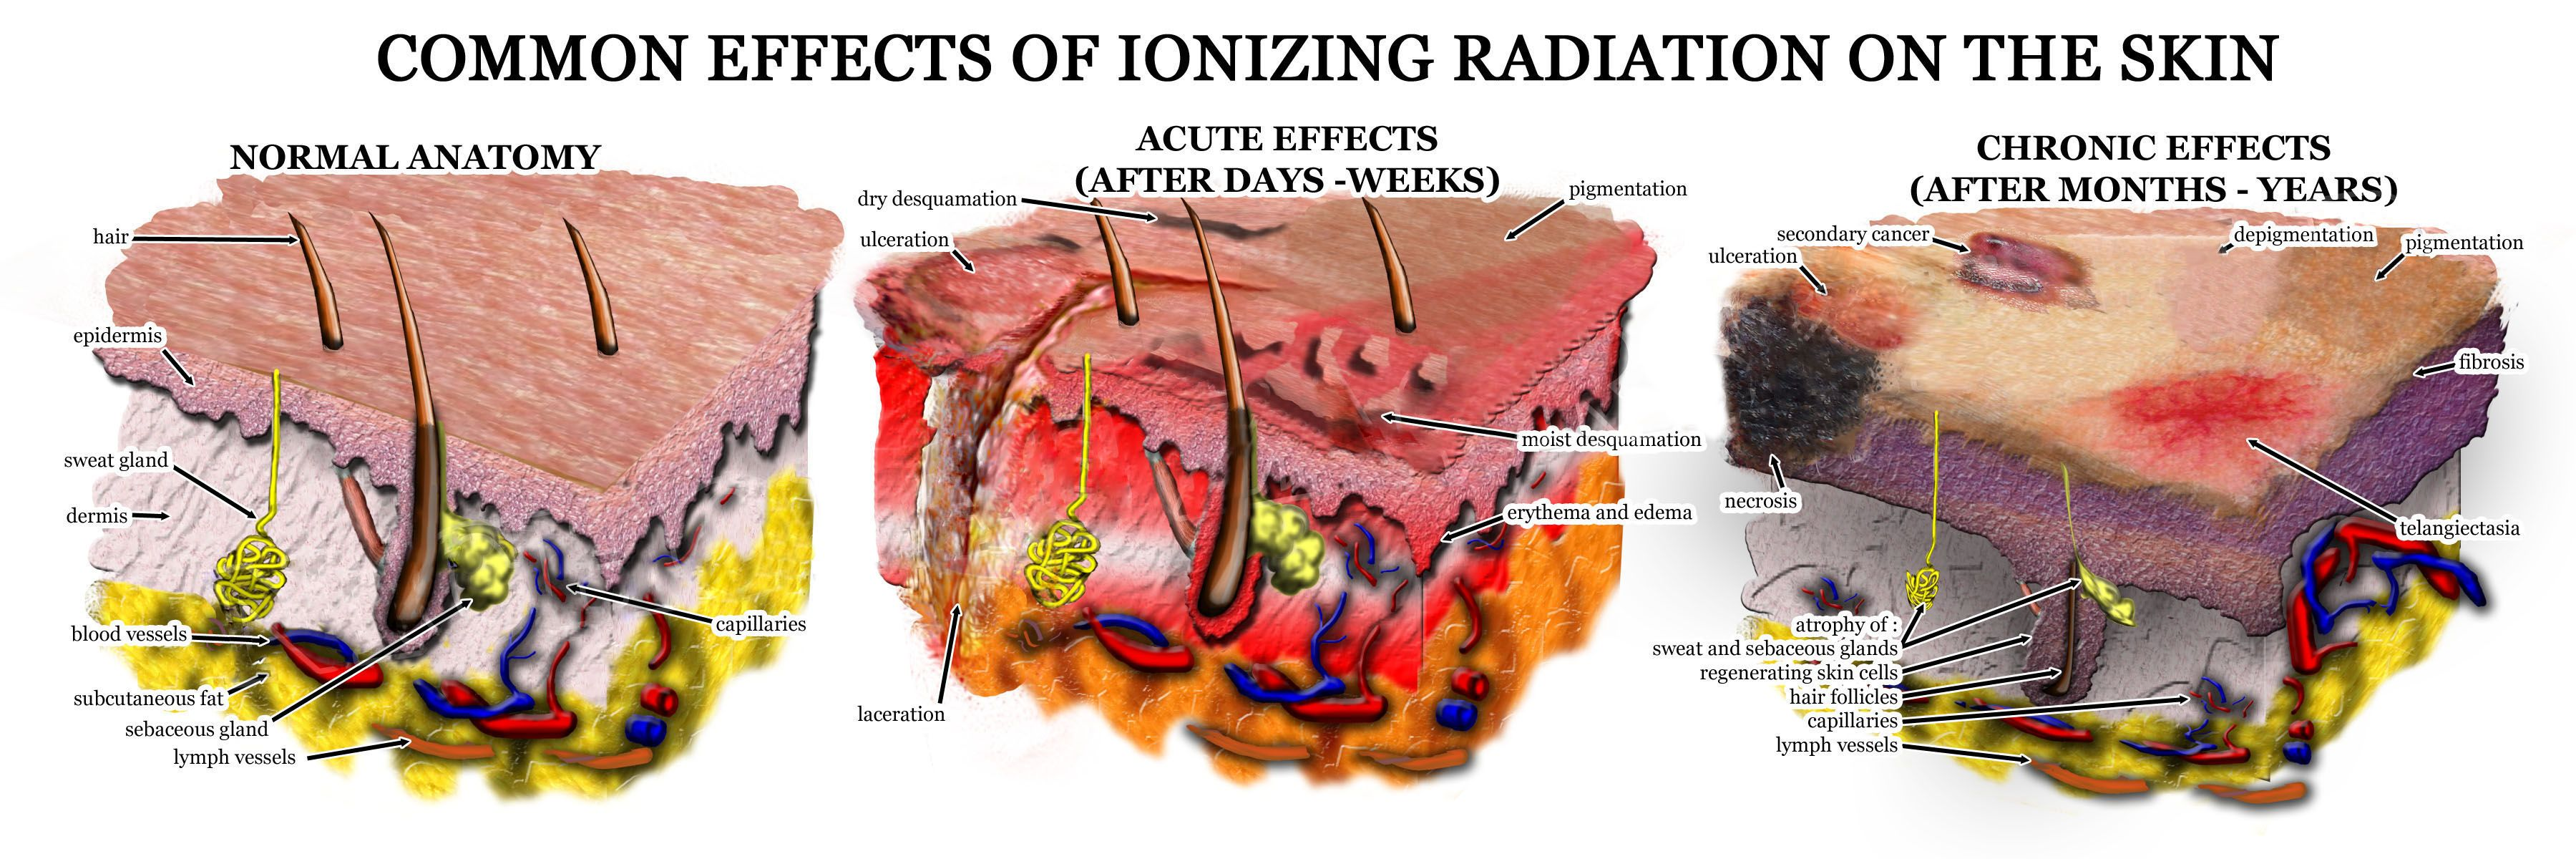 Pictures of and radiation chest wall inflammation and radiation - Common Effects Of Ionizing Radiation On The Skin